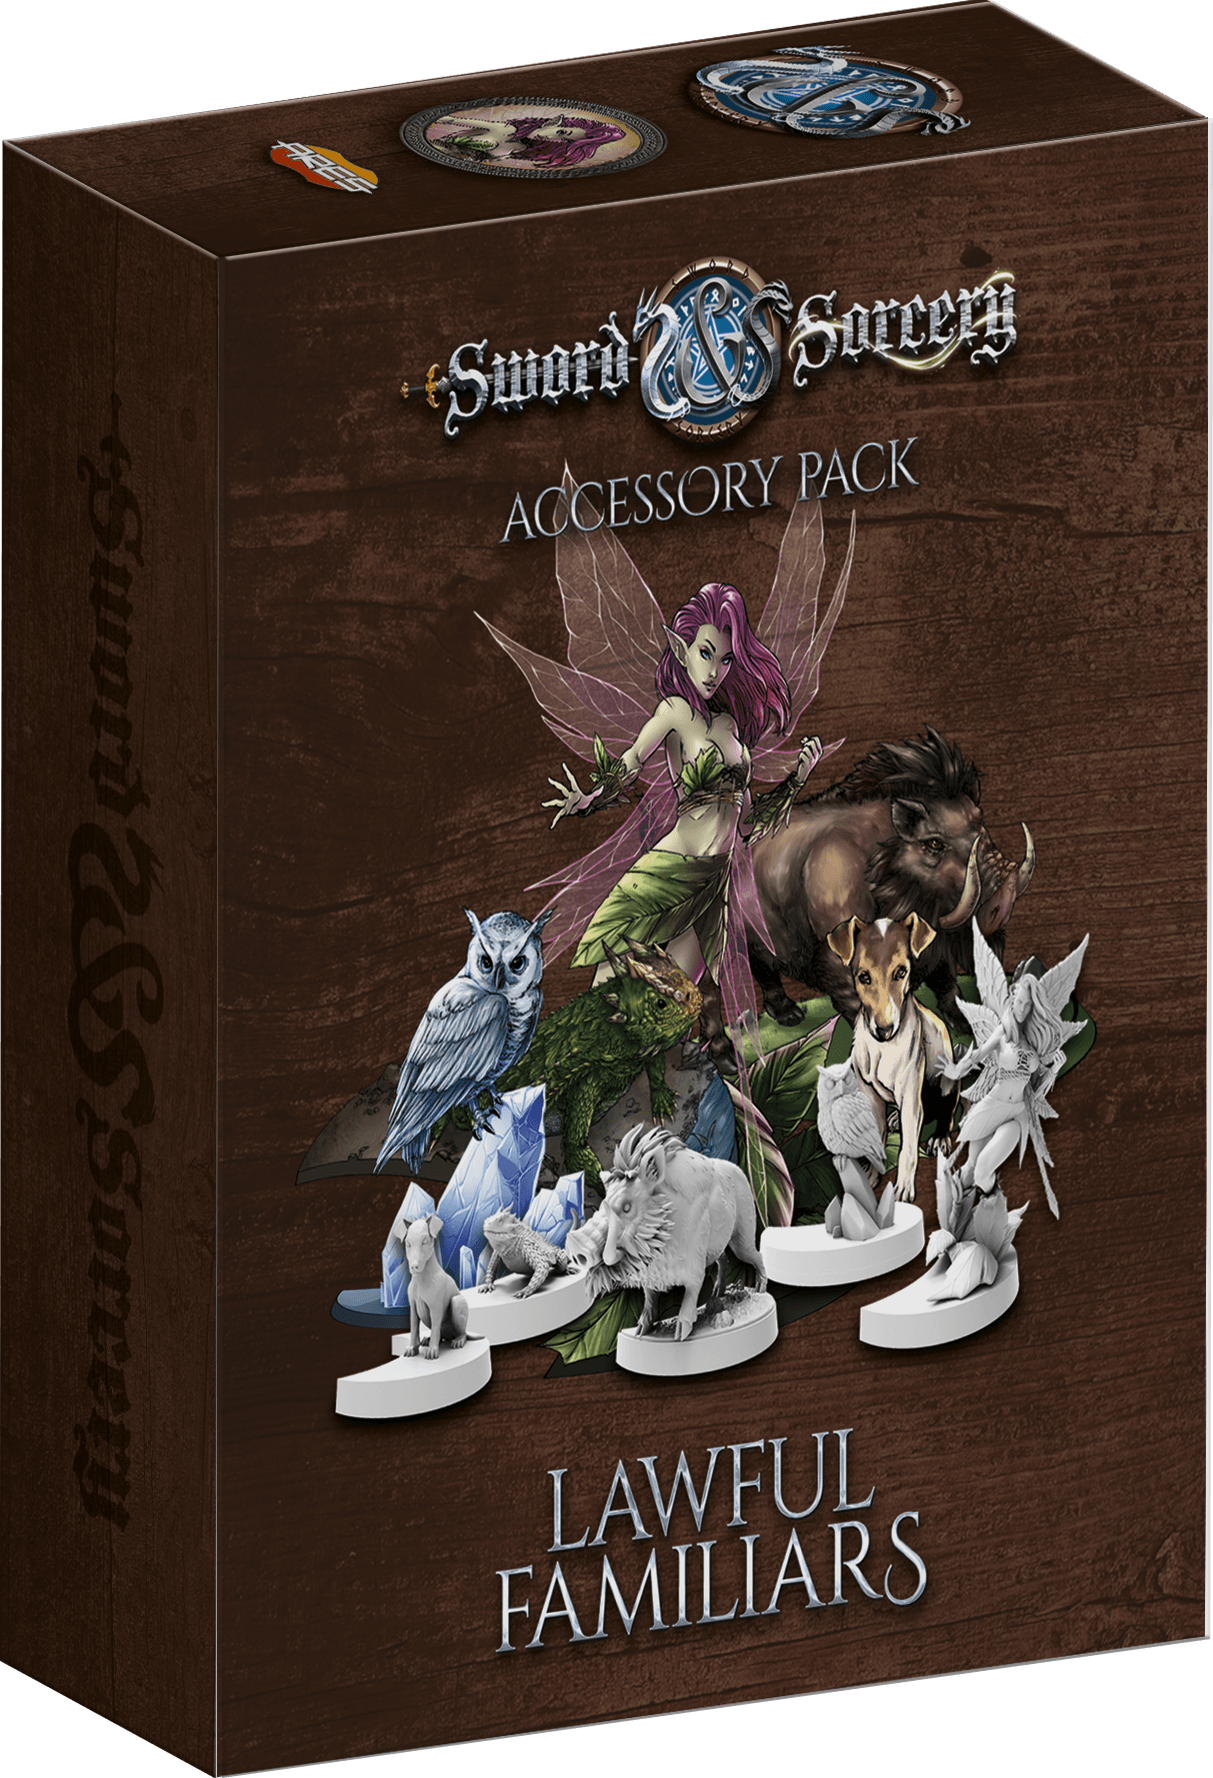 Sword & Sorcery: Lawful Familiars Accessory Pack